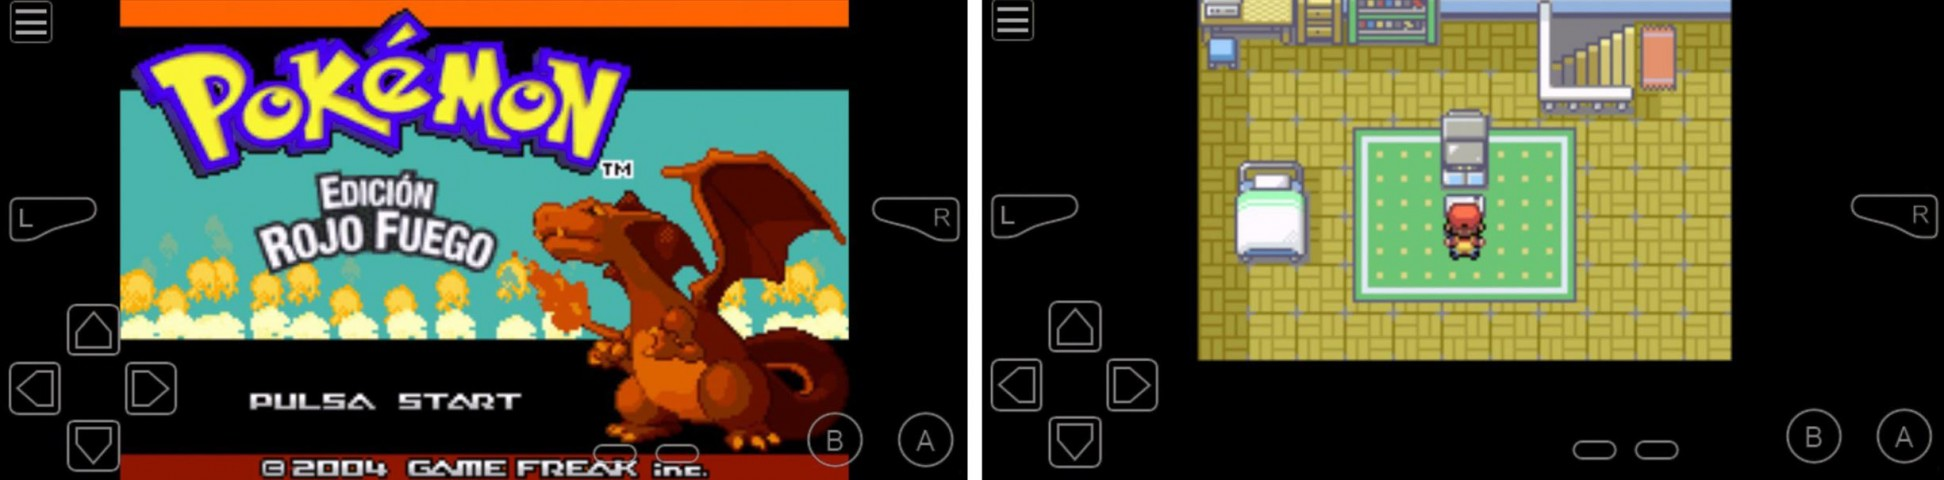 pokemon-fire-red-apk.jpg